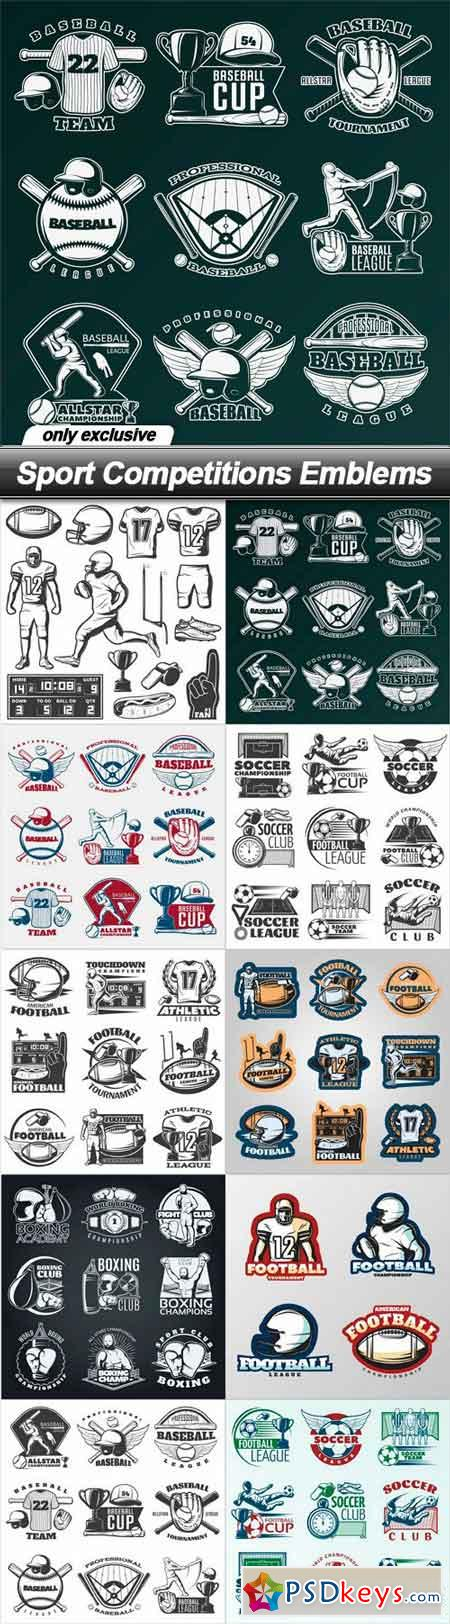 Sport Competitions Emblems - 10 EPS